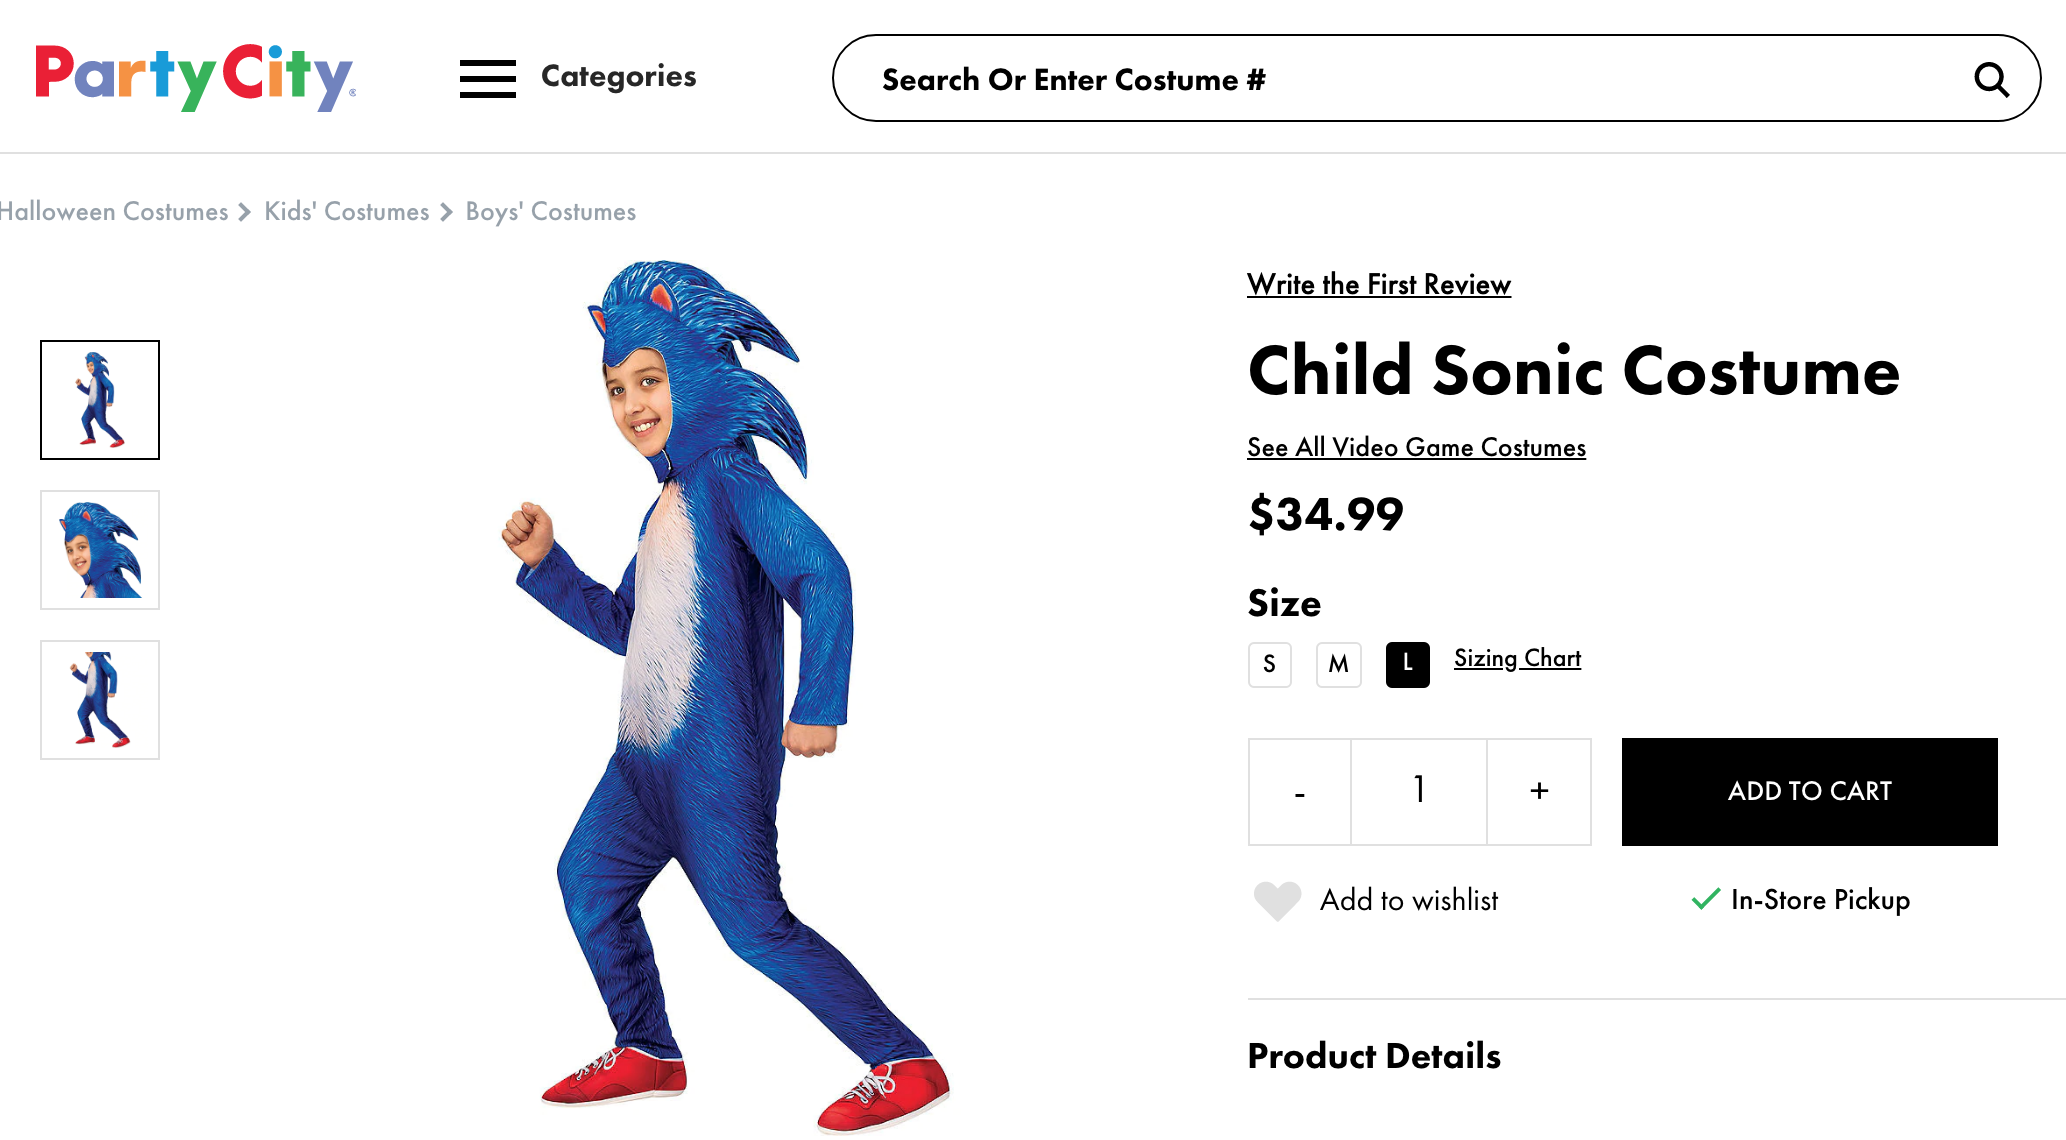 Sonic The Hedgehog Halloween Costumes Are Terrifying People And For Good Reason Ladbible